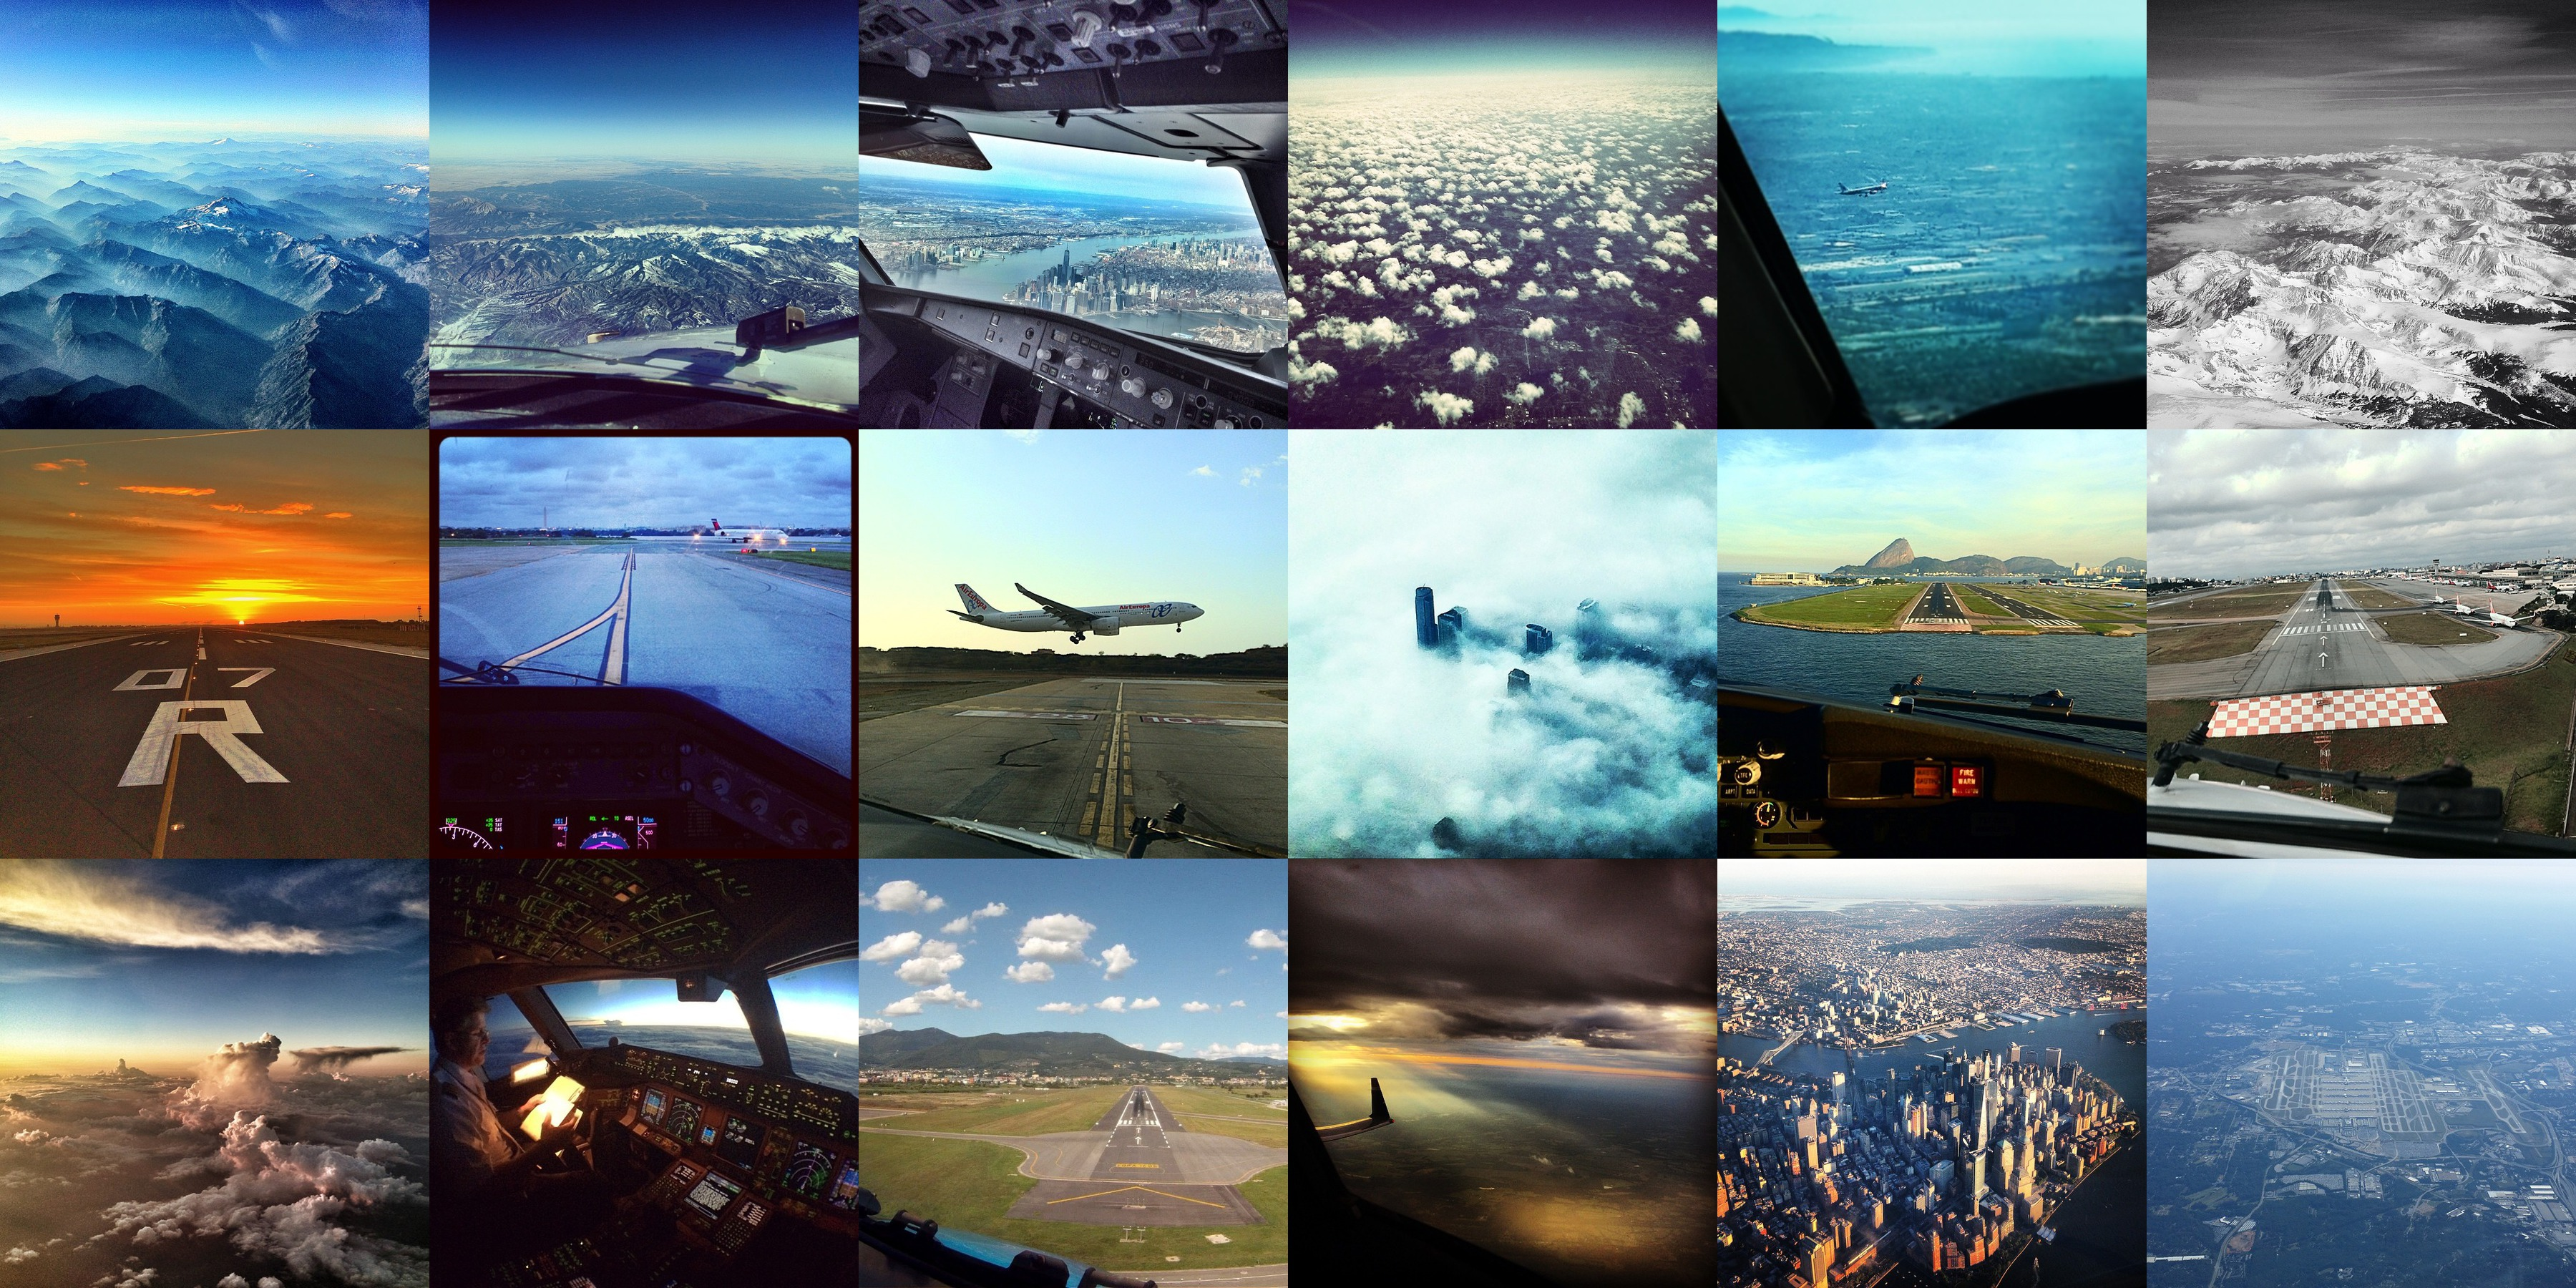 The pilots of Instagram: beautiful views from the cockpit, violating rules of the air